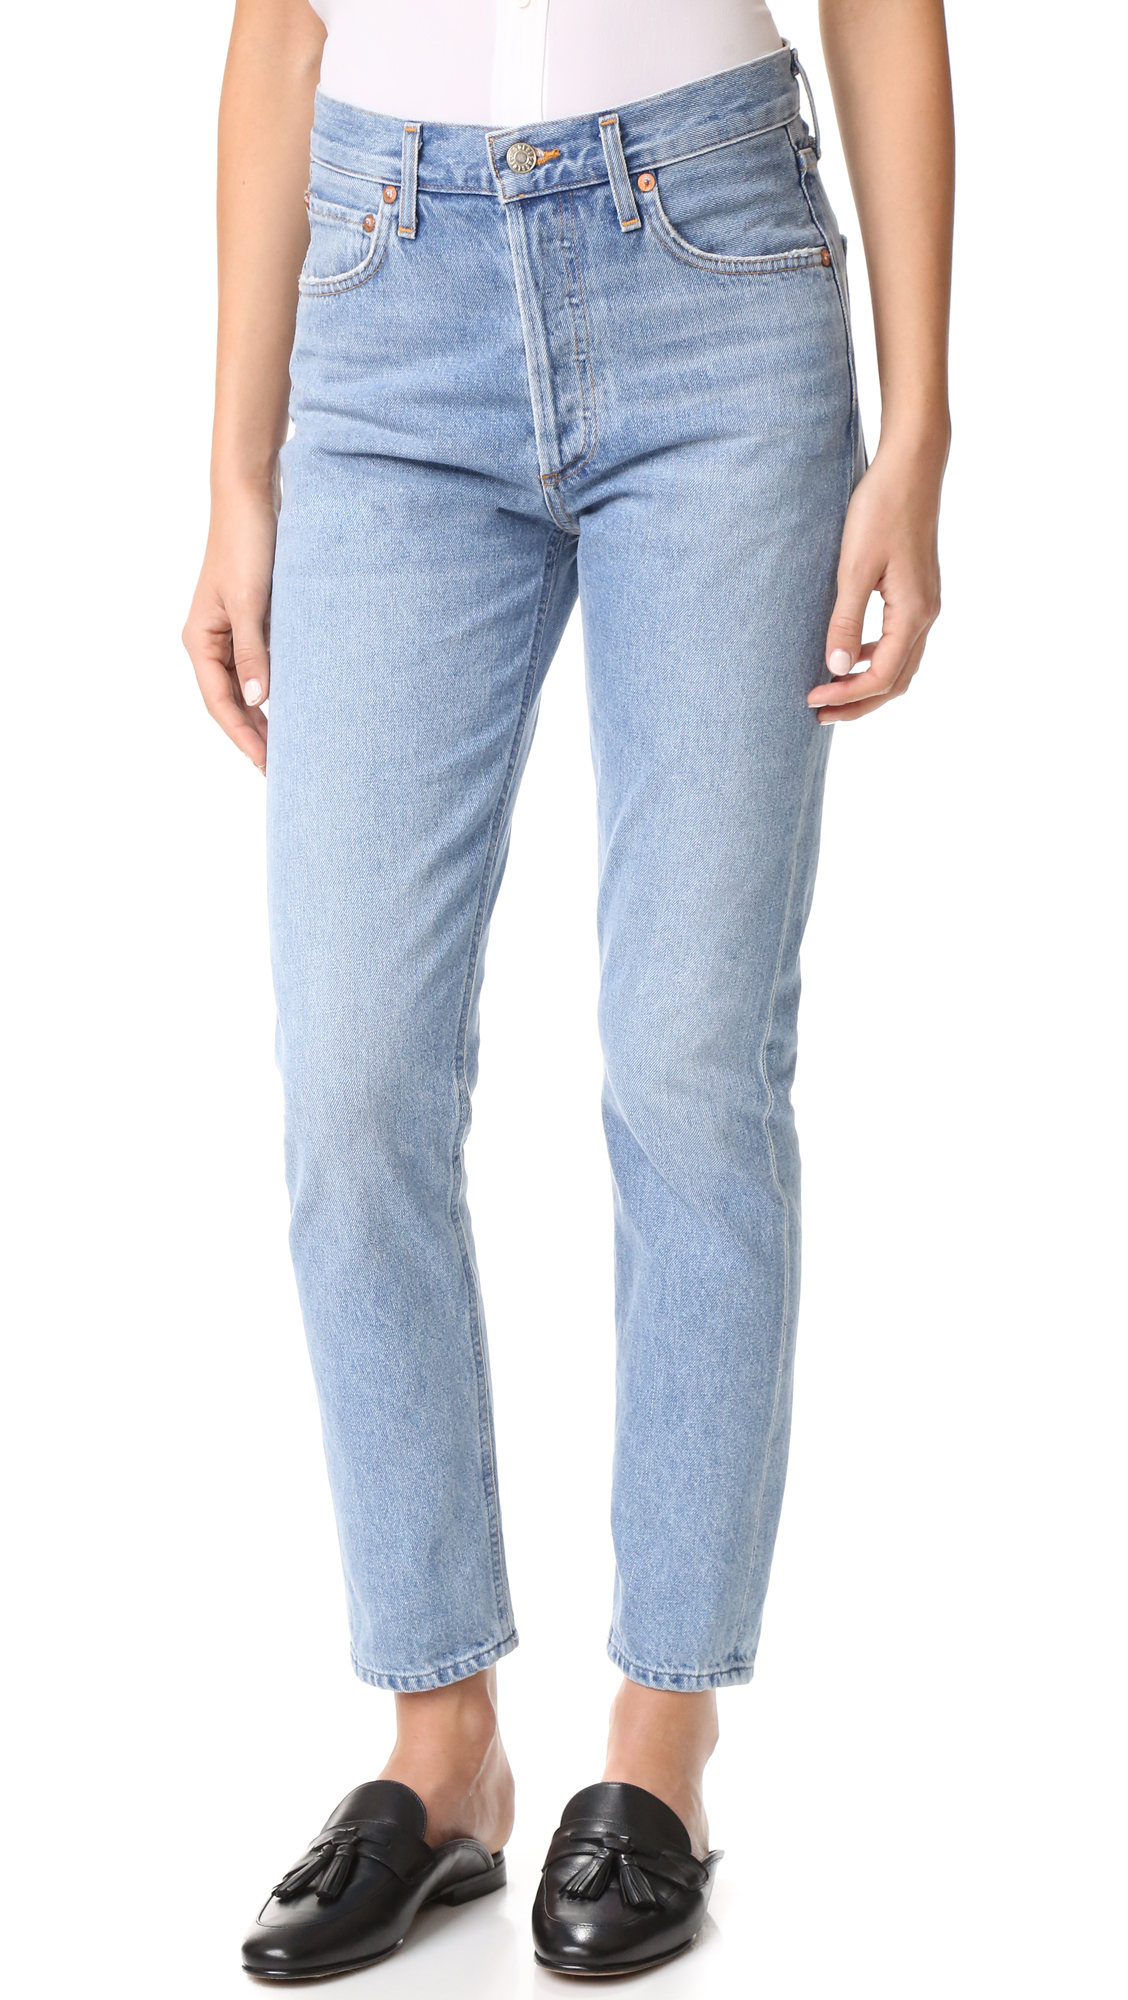 Agolde Jamie High Rise Classic Jeans - Brooklyn at Shopbop